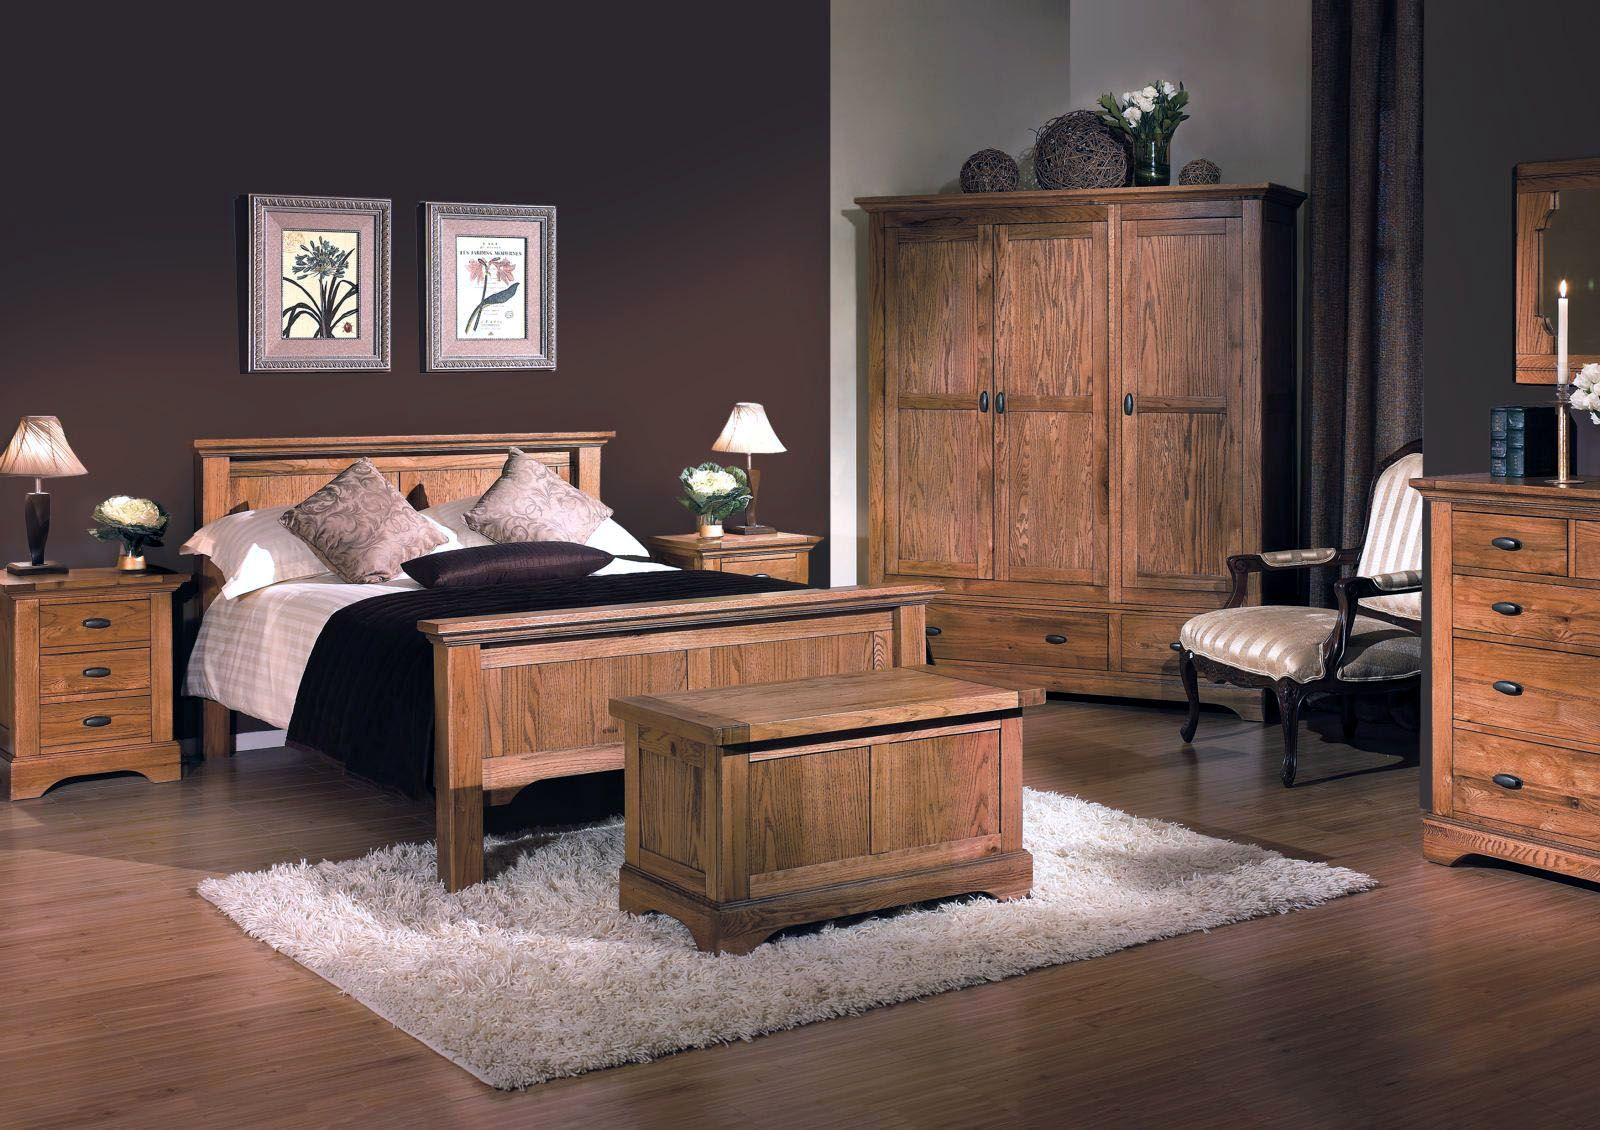 Master Bedroom Decorating Ideas Oak Bedroom Furniture Wooden Bedroom Furniture Master Bedroom Interior Design